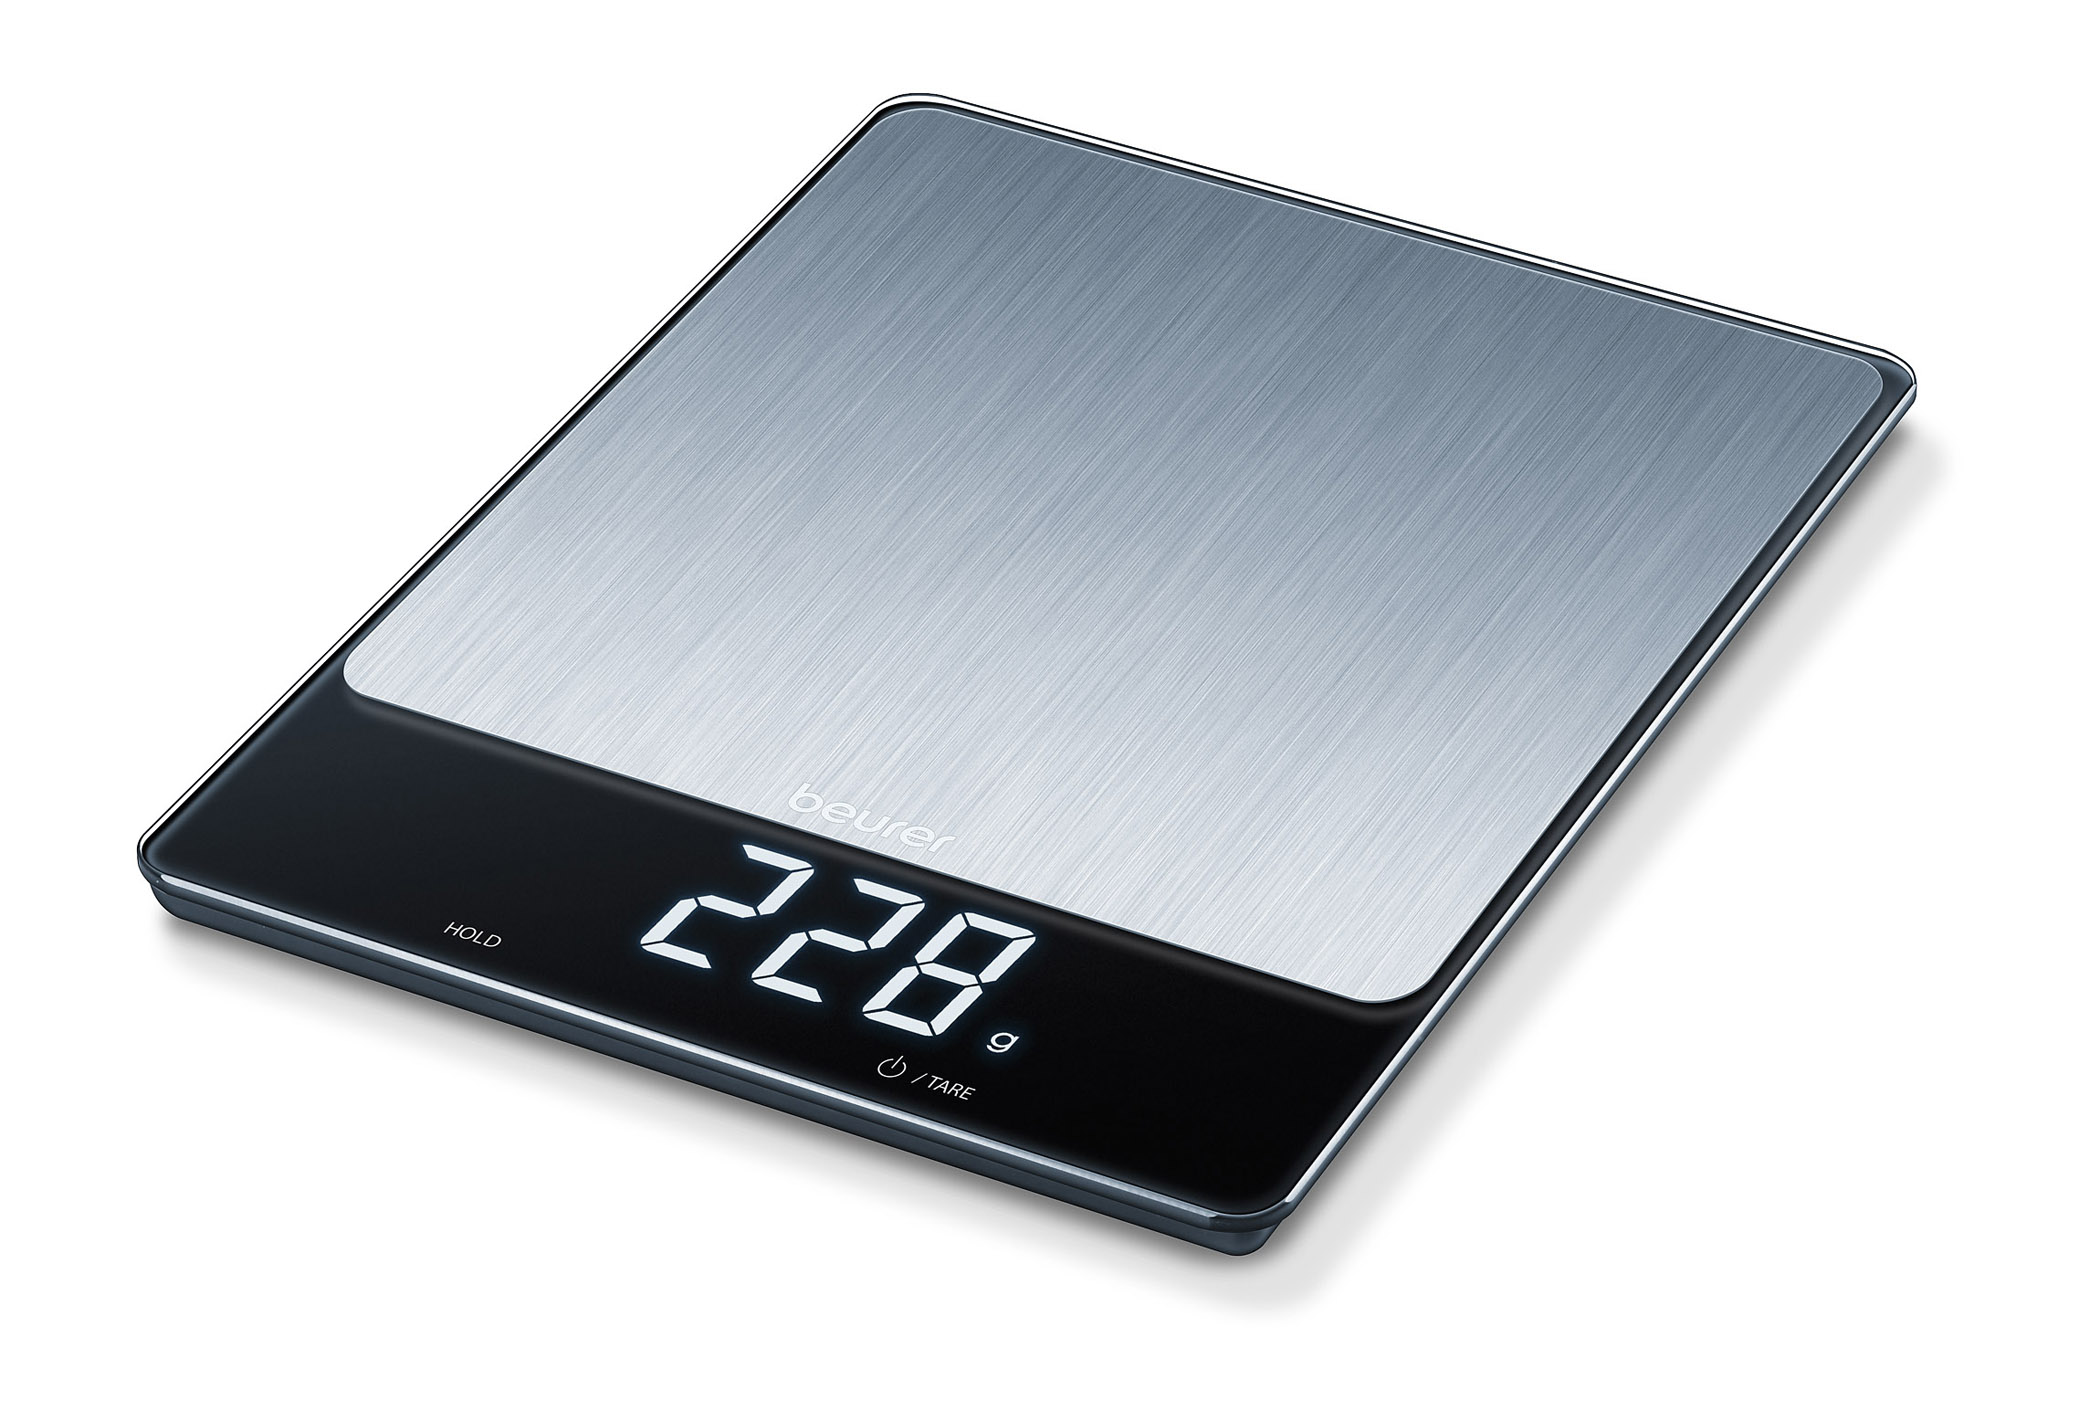 <h1>Beurer Küchenwaage KS 34 XL Stainless Steel</h1><h3 style='font-size: 20px; margin: 0px 0px 15px 0px;'> -Magic LED-Display, 15 kg Tragkraft</h3>